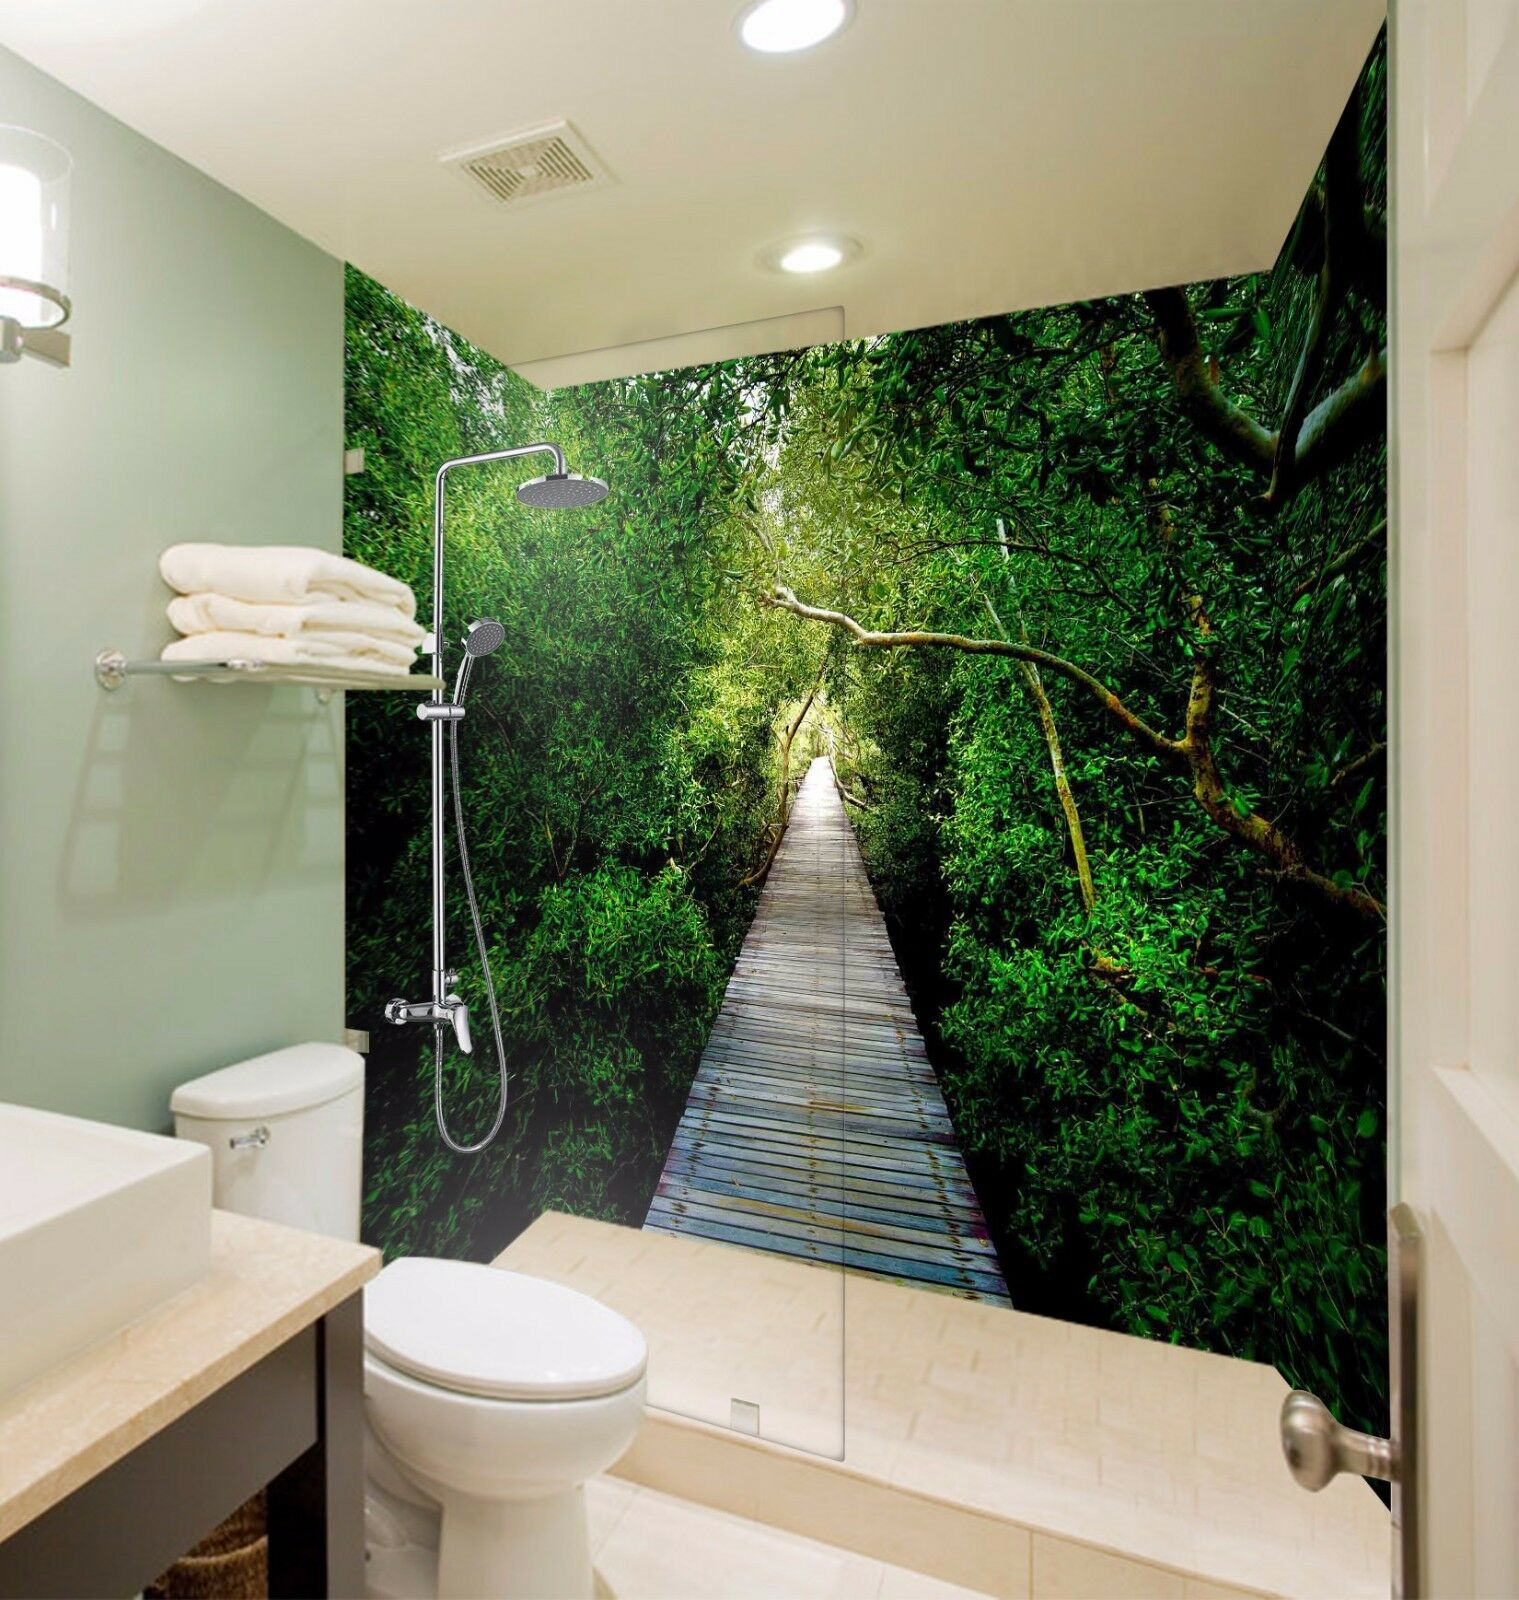 3D Green Path  7153  WallPaper Bathroom Print Decal Wall Deco AJ WALLPAPER AU